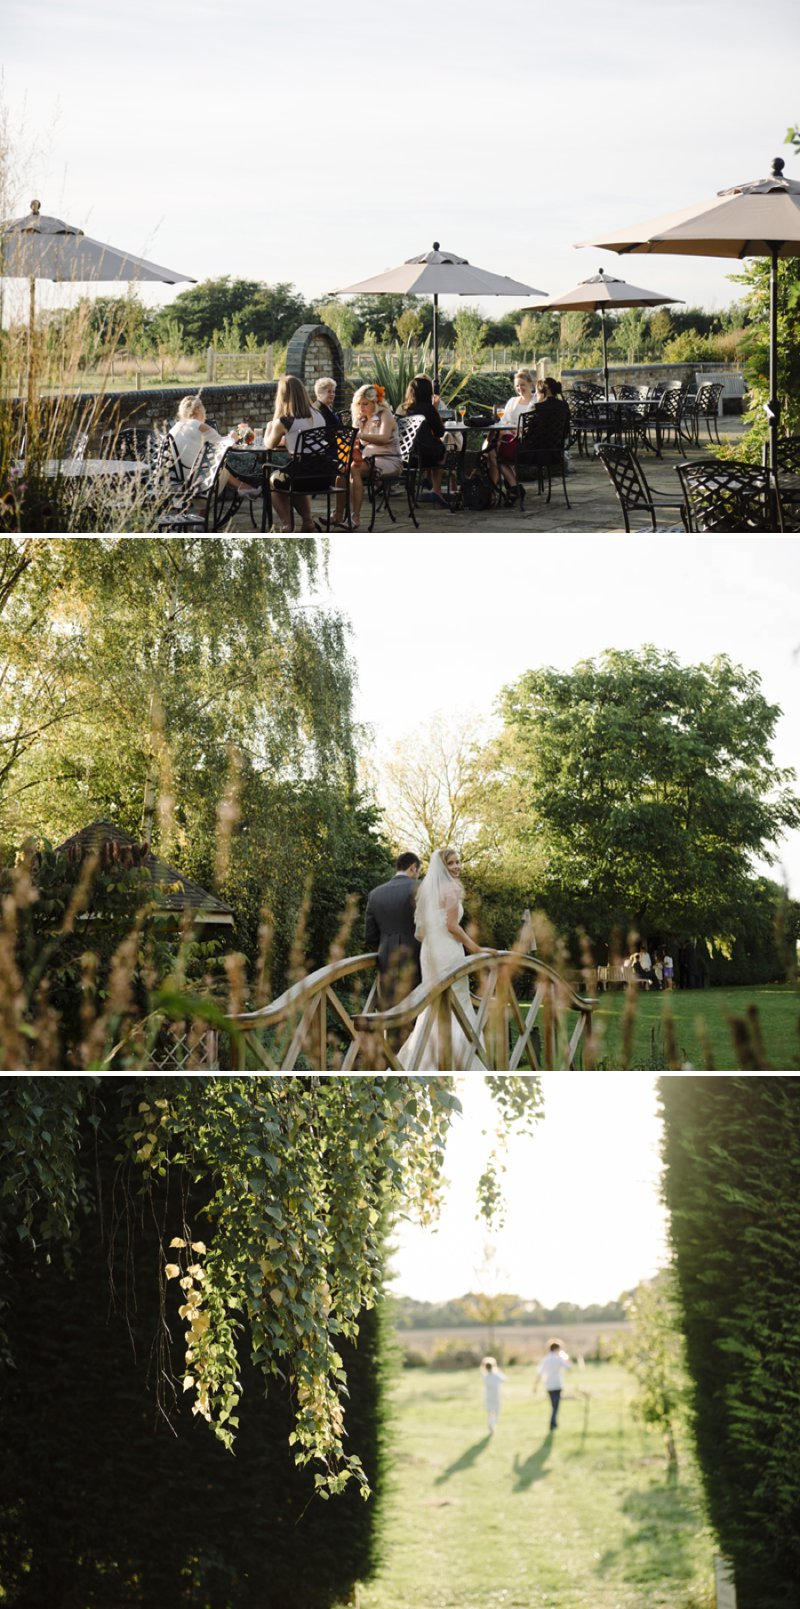 Autumnal Farm Wedding At South Farm In Cambridgeshire With Bride In Mermaid Style Lace Gown With Pumpkins For Table Centre Pieces 7